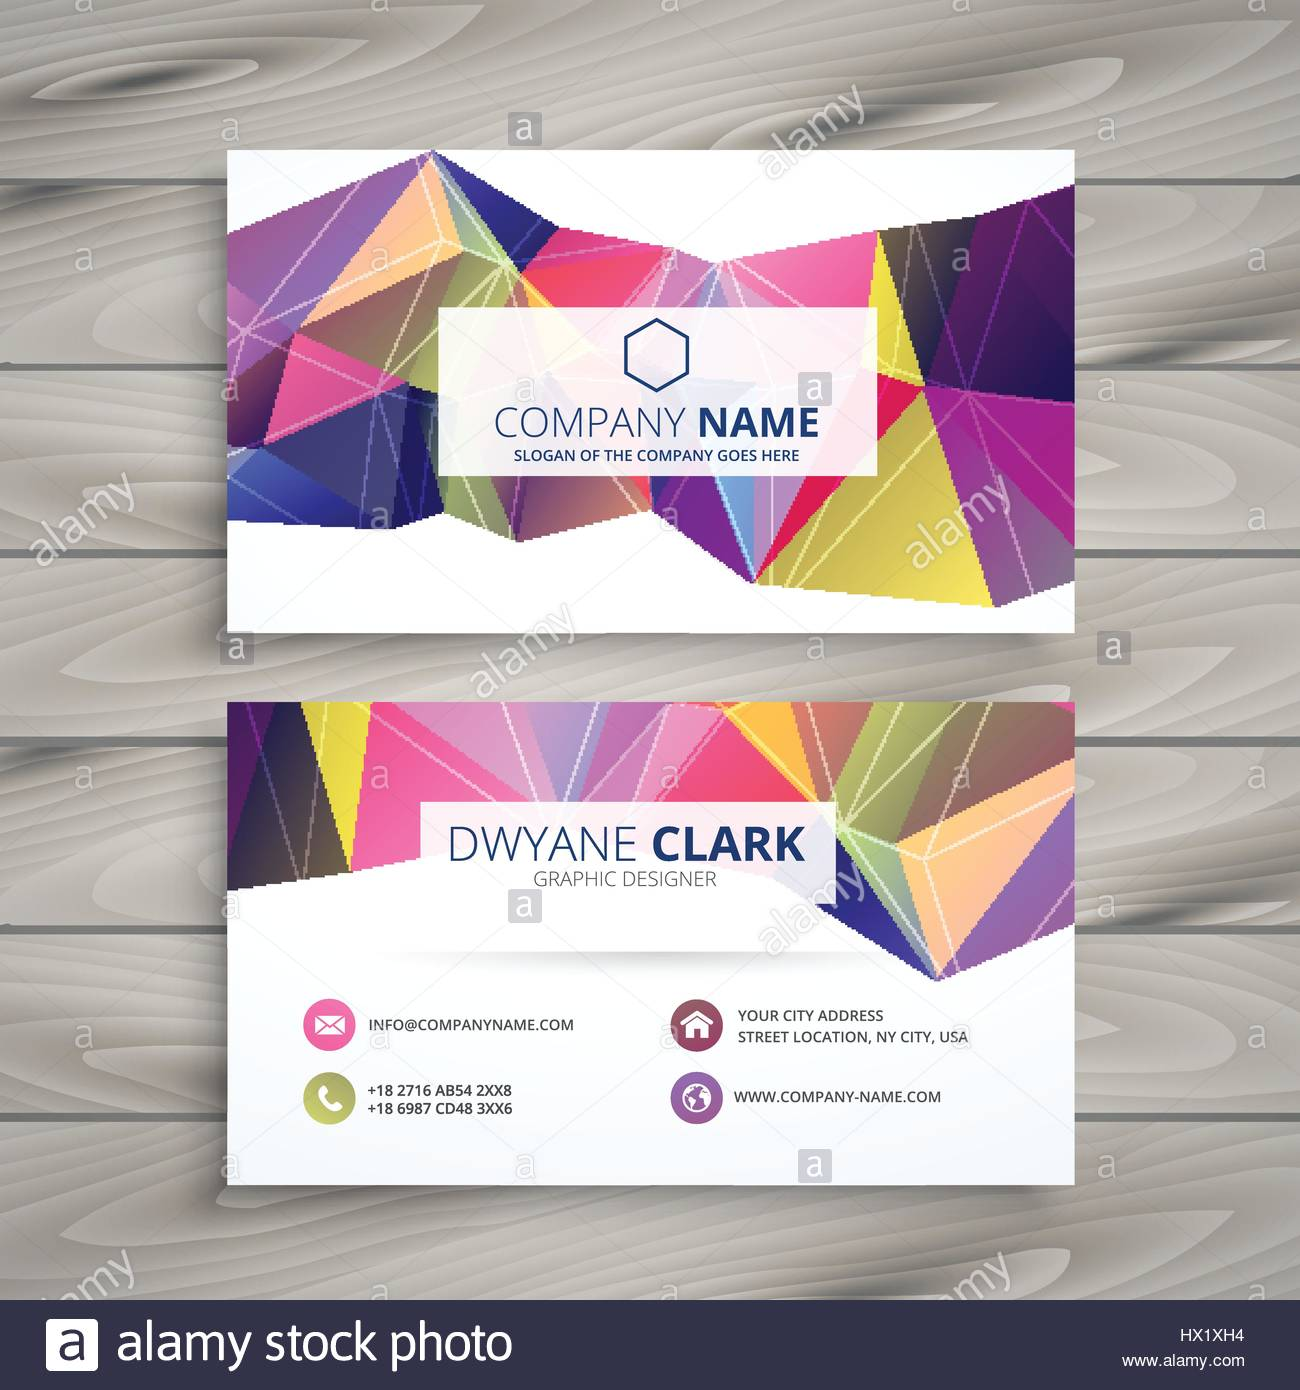 Creative Business Card Template Vector Design Illustration Stock Vector Image Art Alamy,Watercolor Small Simple Owl Tattoo Designs